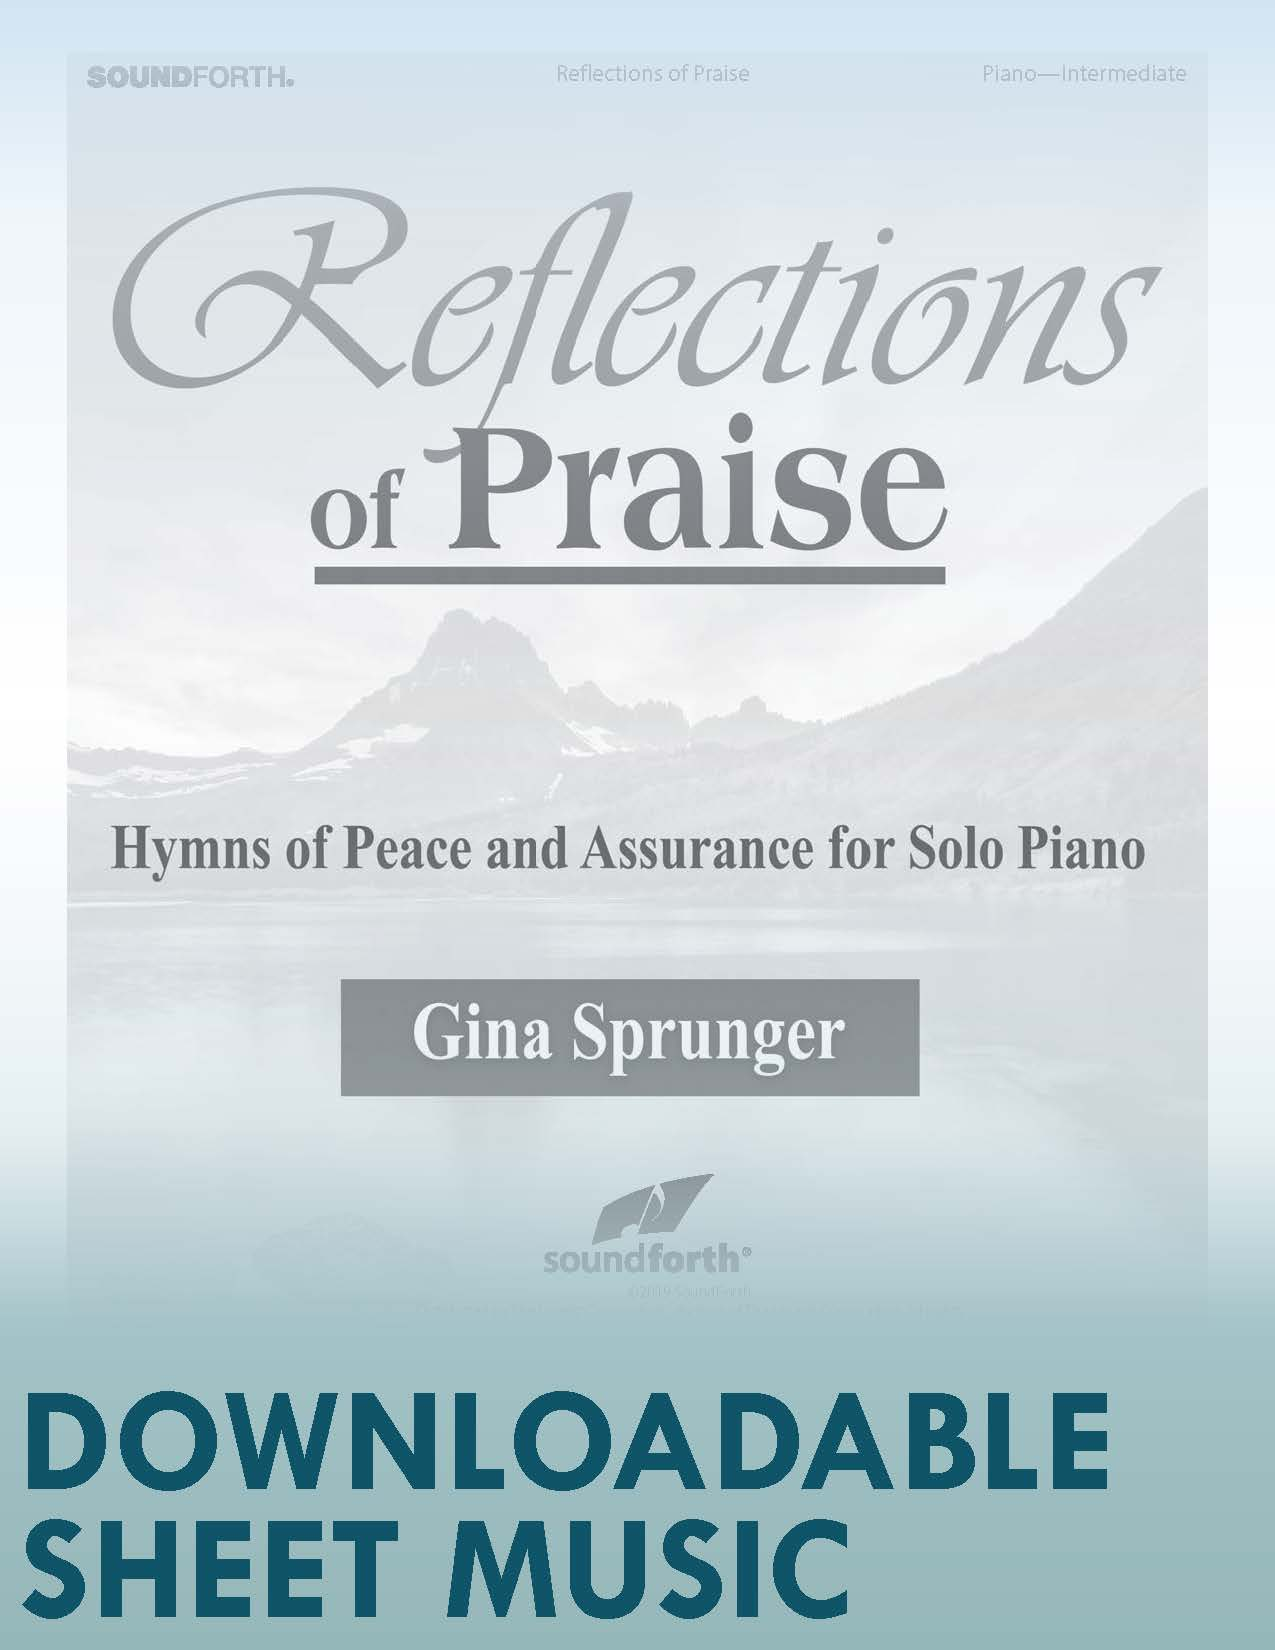 Reflections of Praise - Digital Download